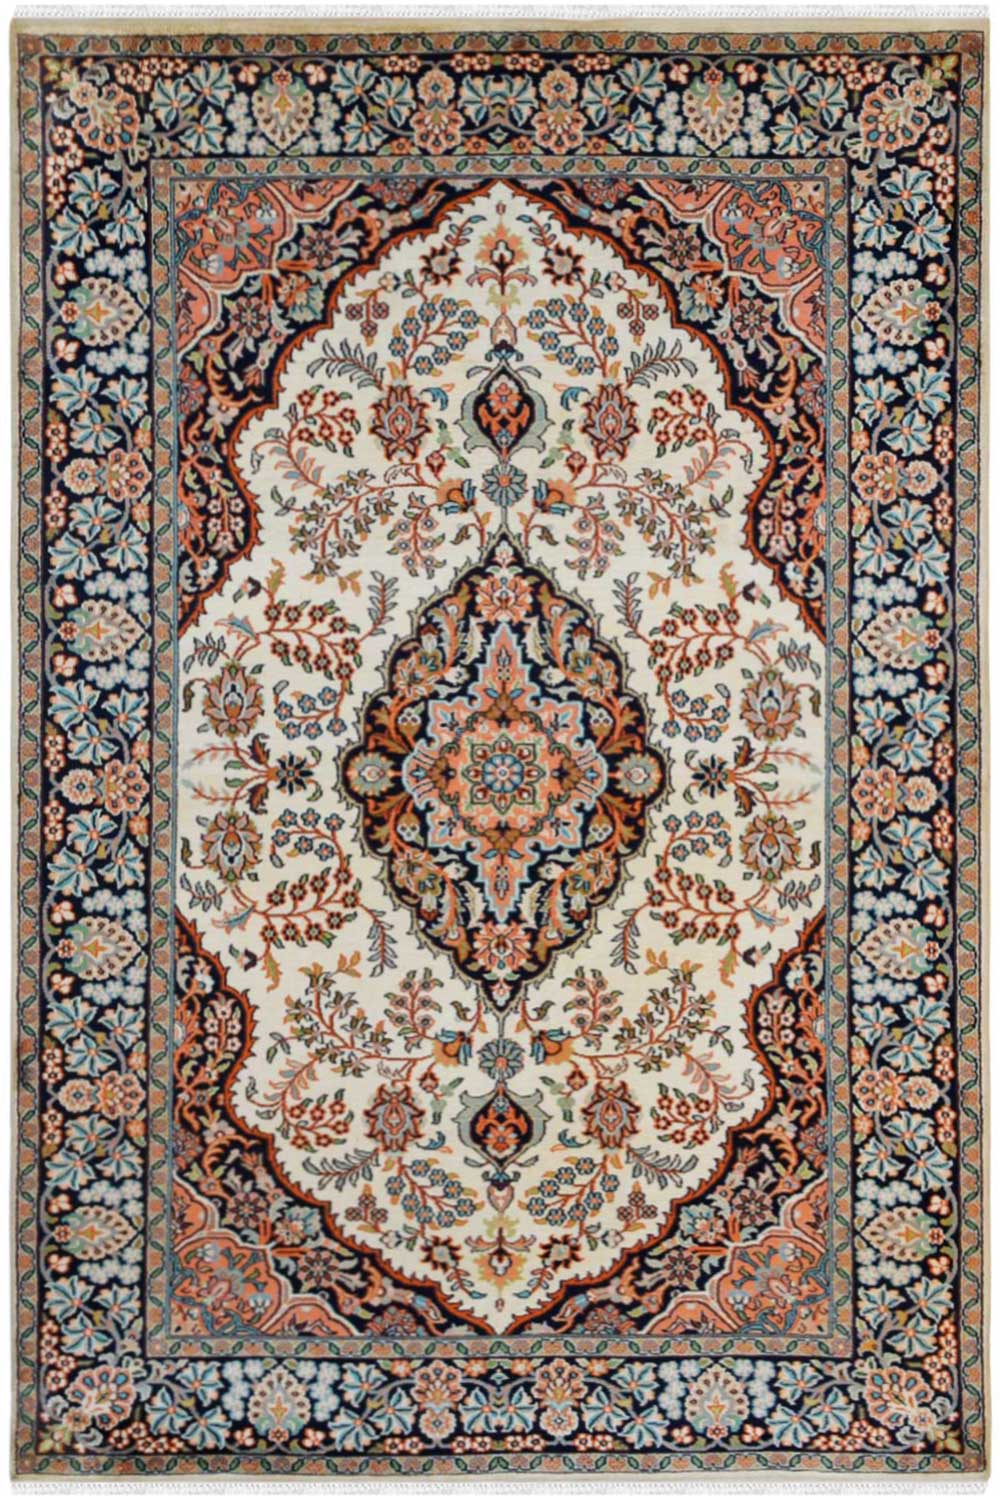 Buy Diamond Cream Kashan Rug Handmade Silk Rugs Rugs